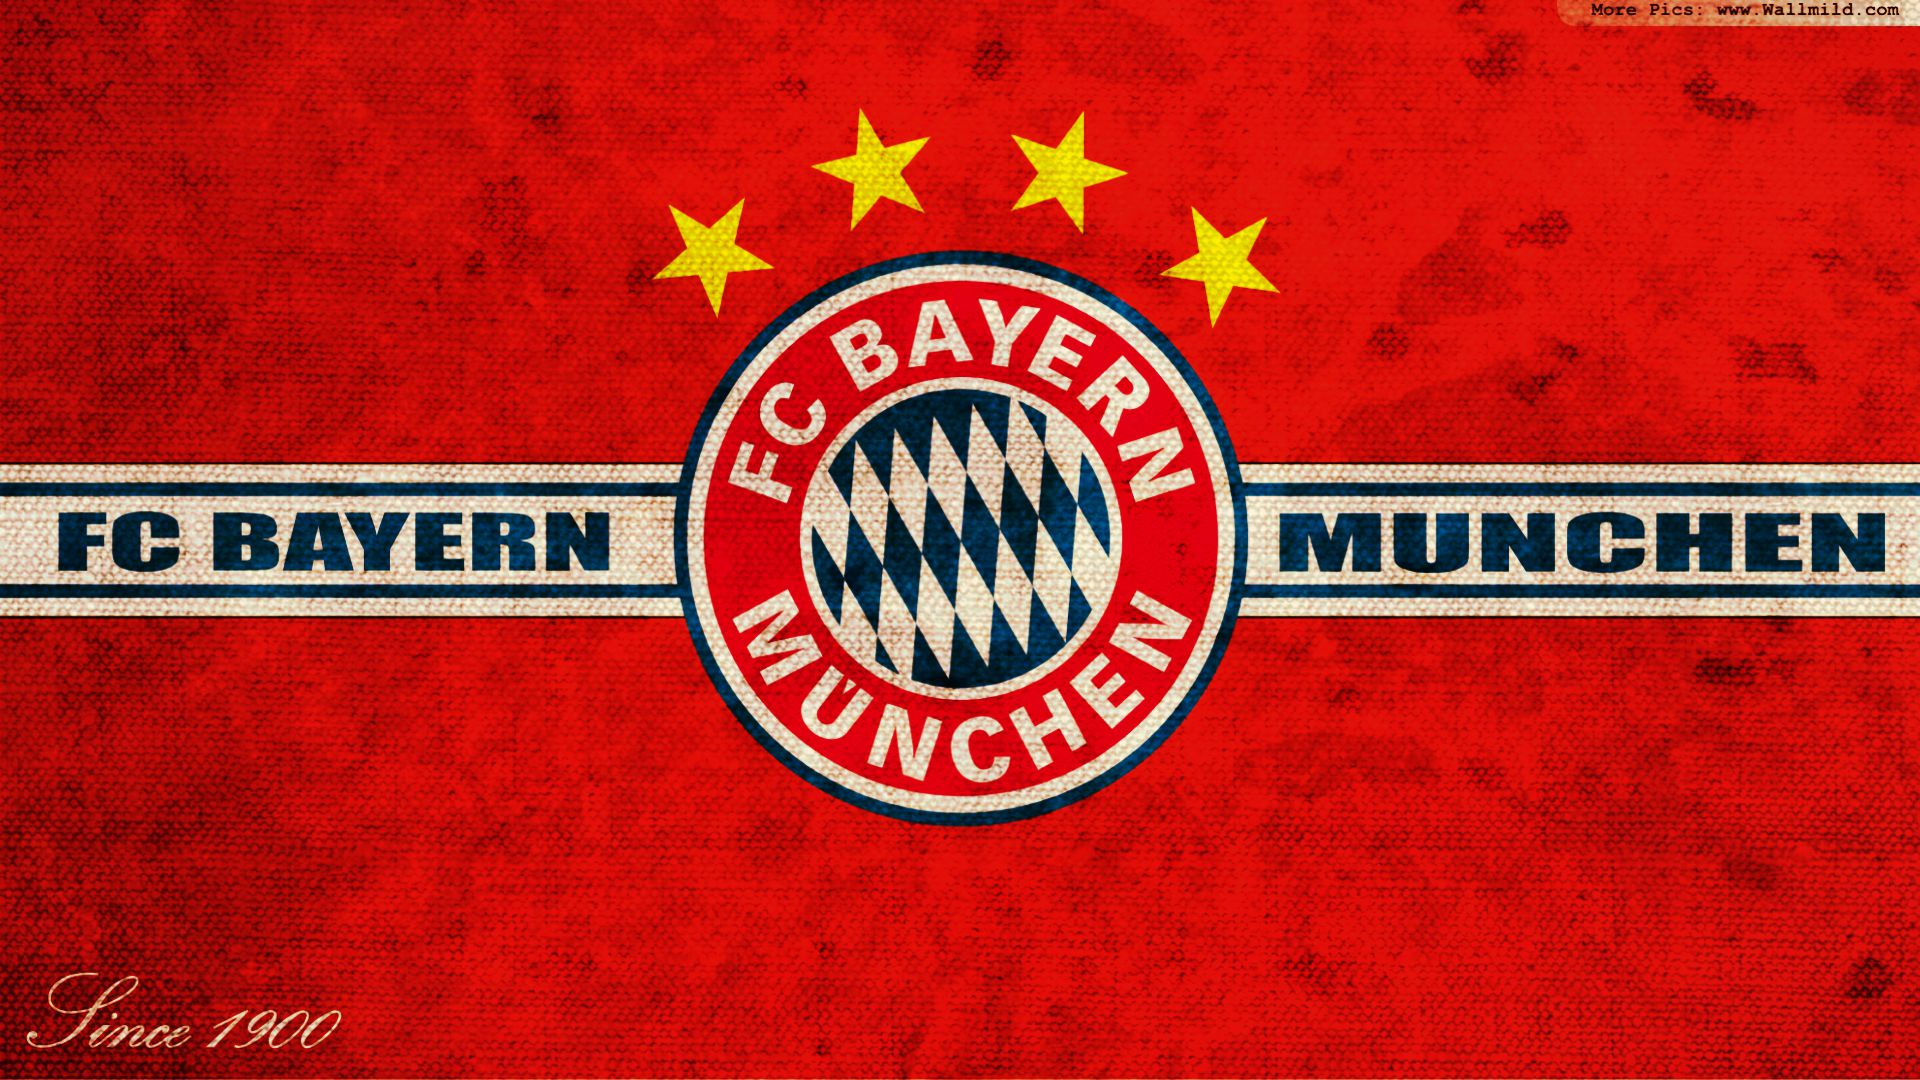 Bayern Munich - Top 10 Football Clubs In Europe, 2018